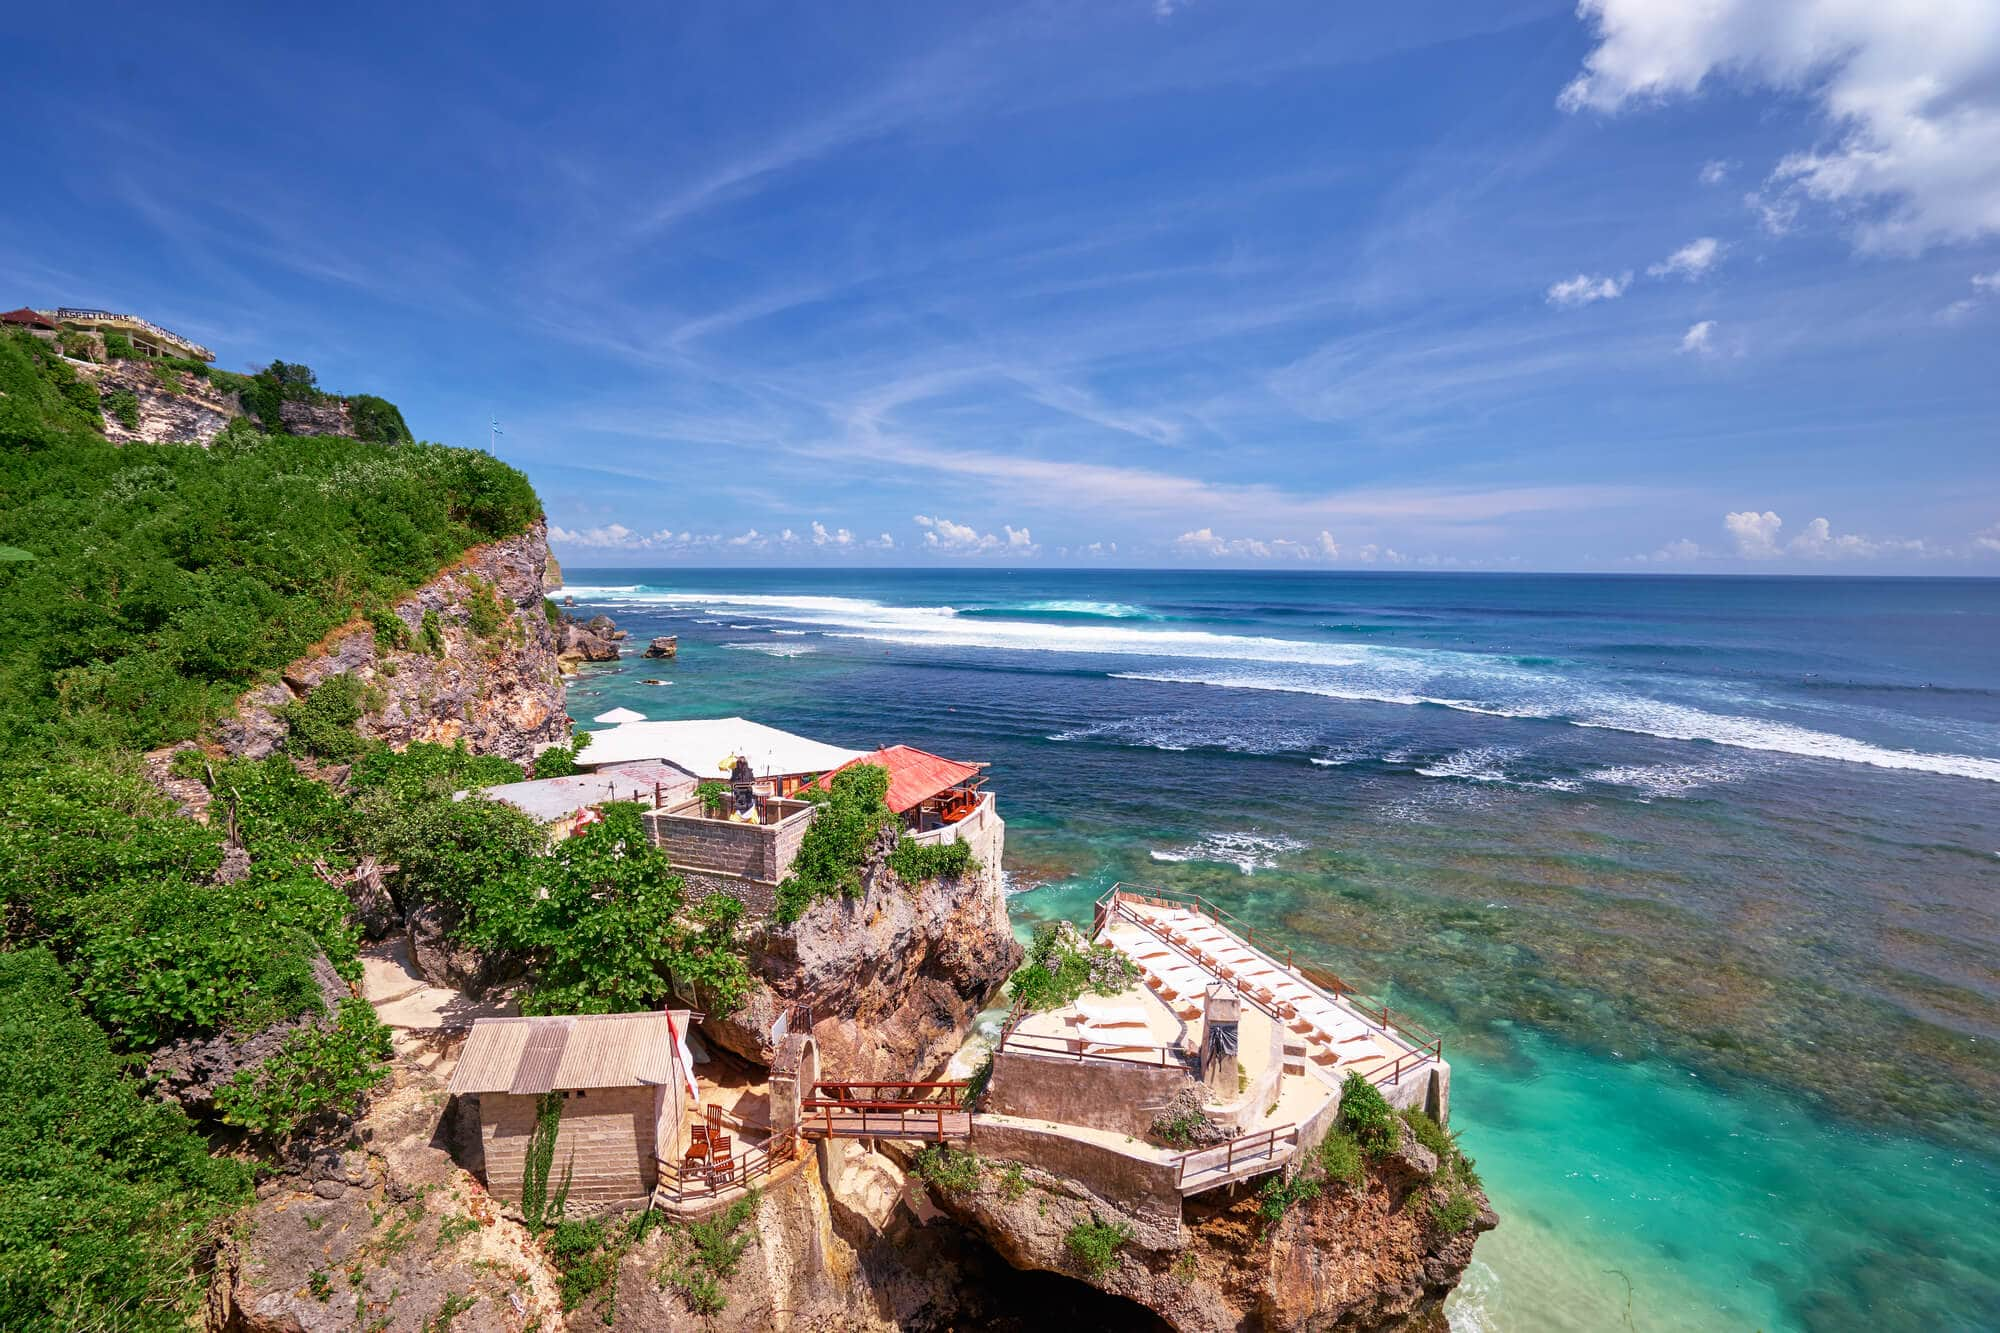 Where to stay in Bali: A complete guide to the different areas on the island - Uluwatu Cliff in South Bali